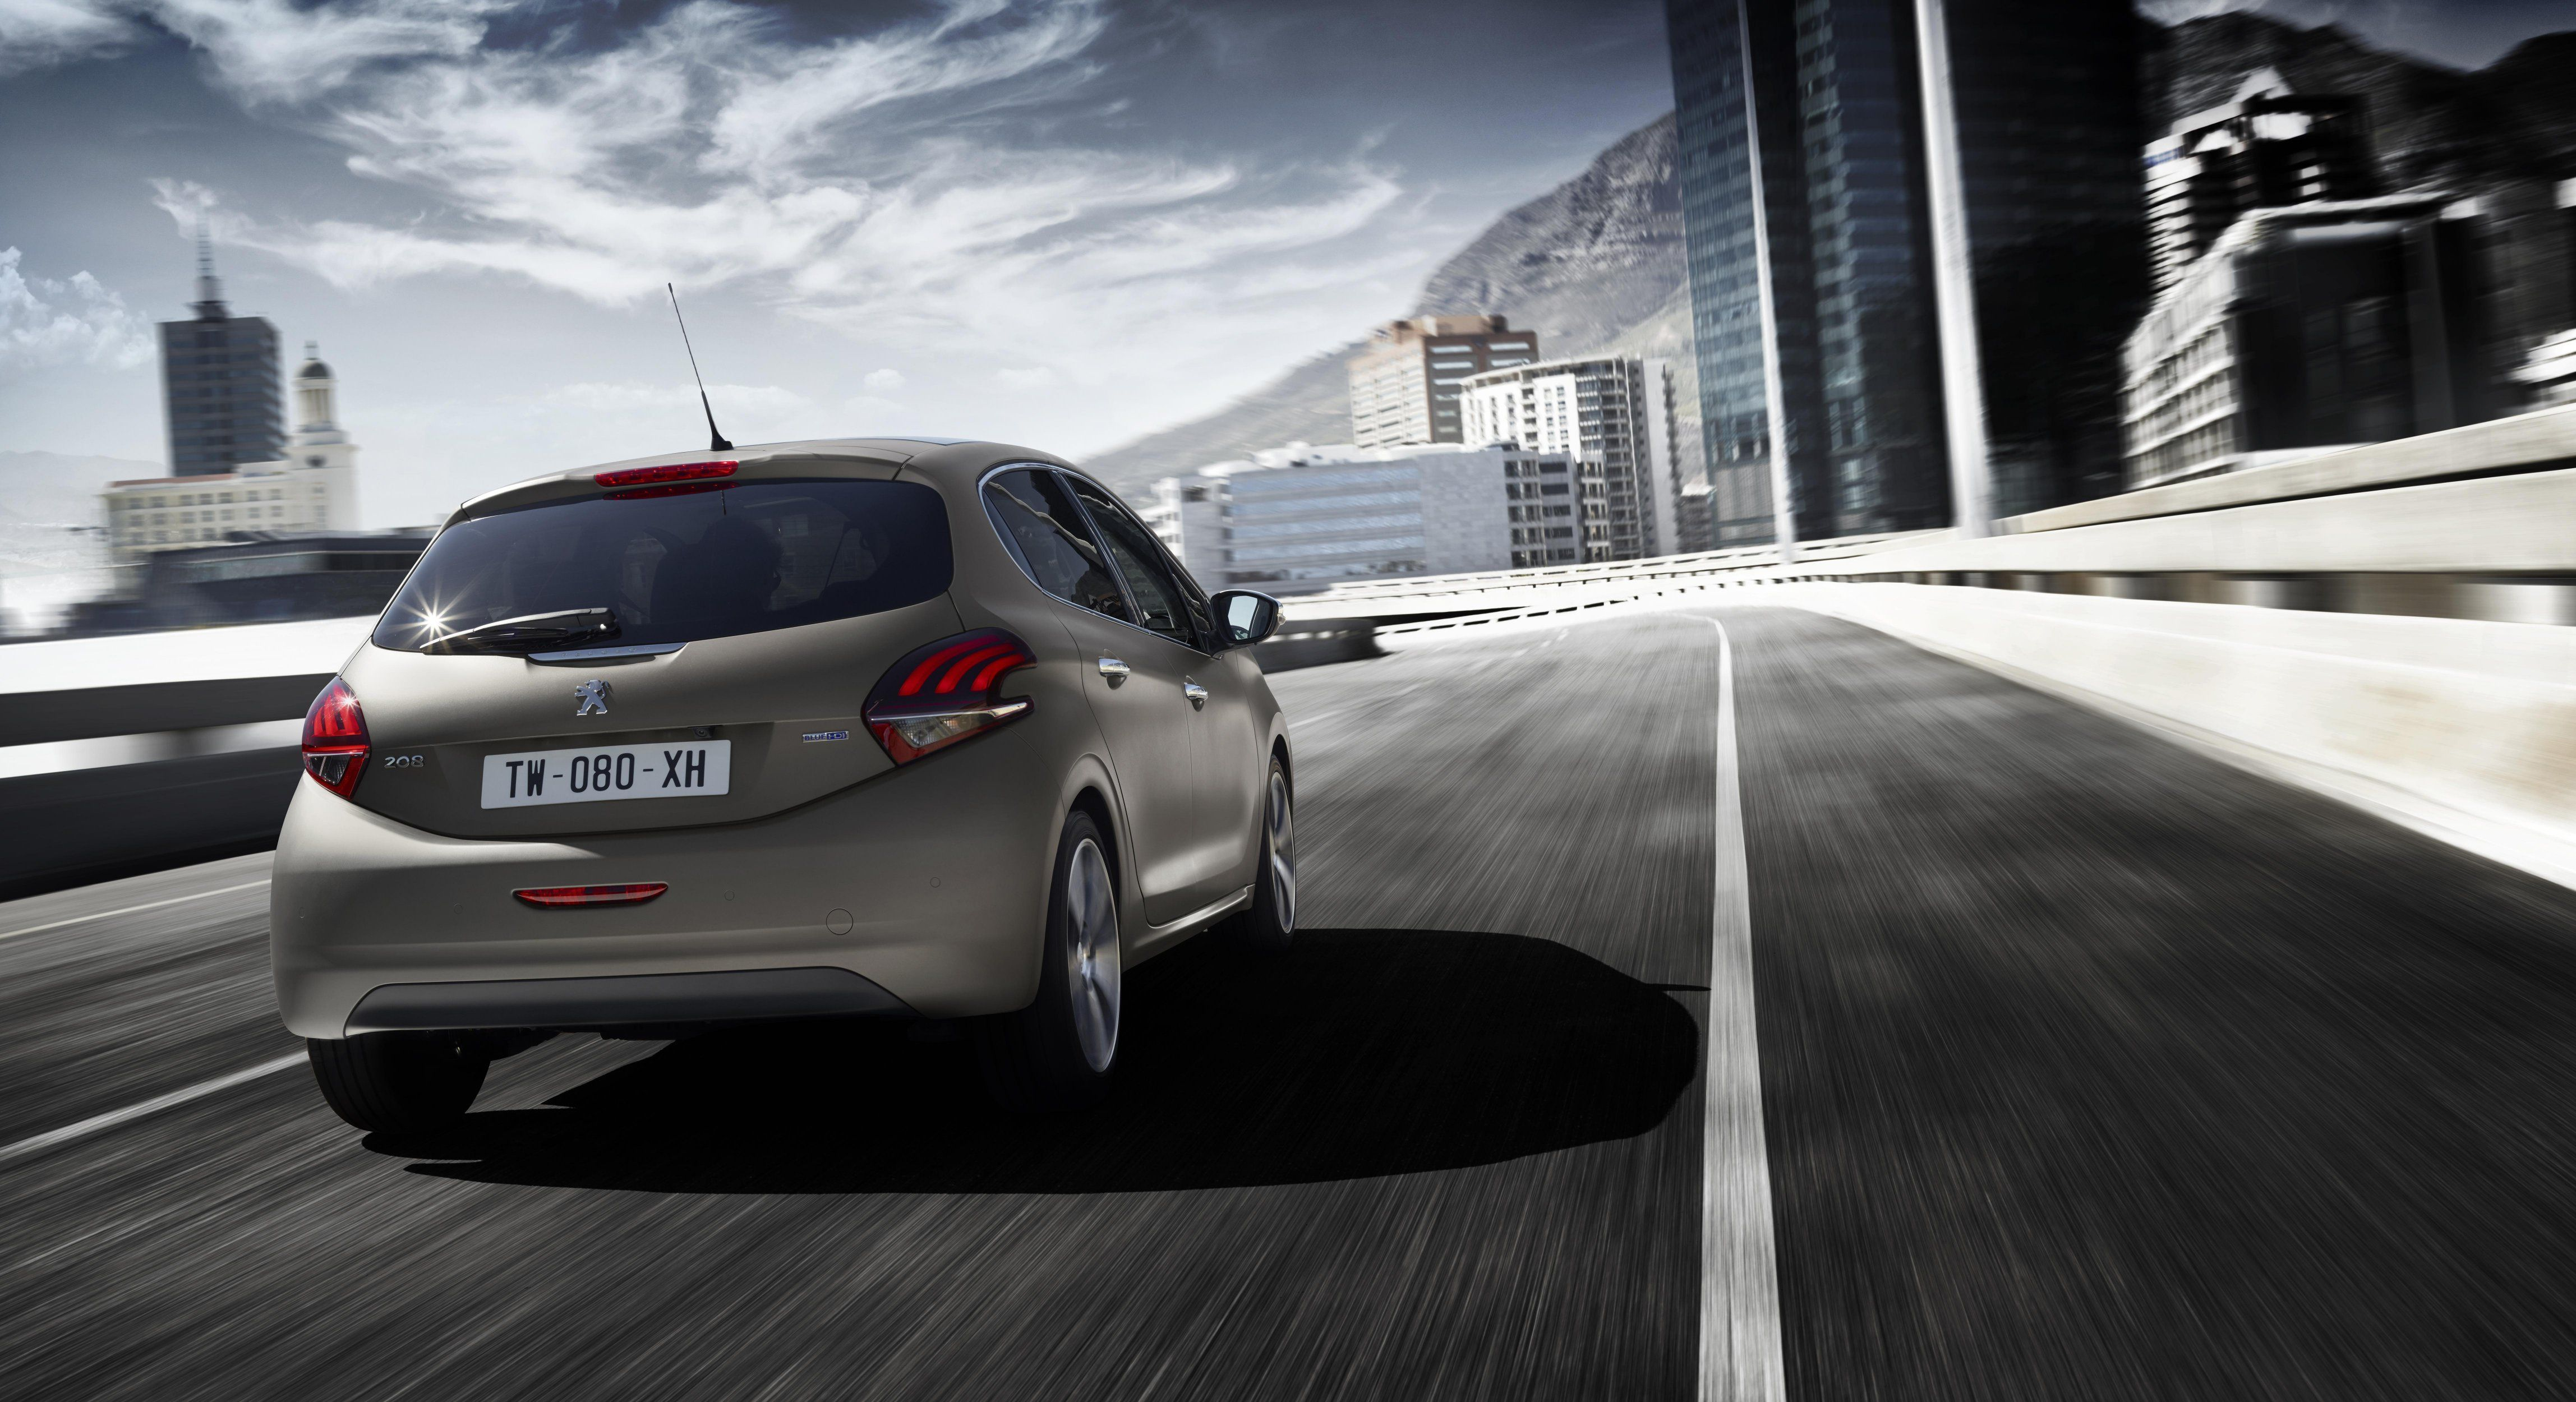 The New PEUGEOT 308 in Ice Grey - In Action